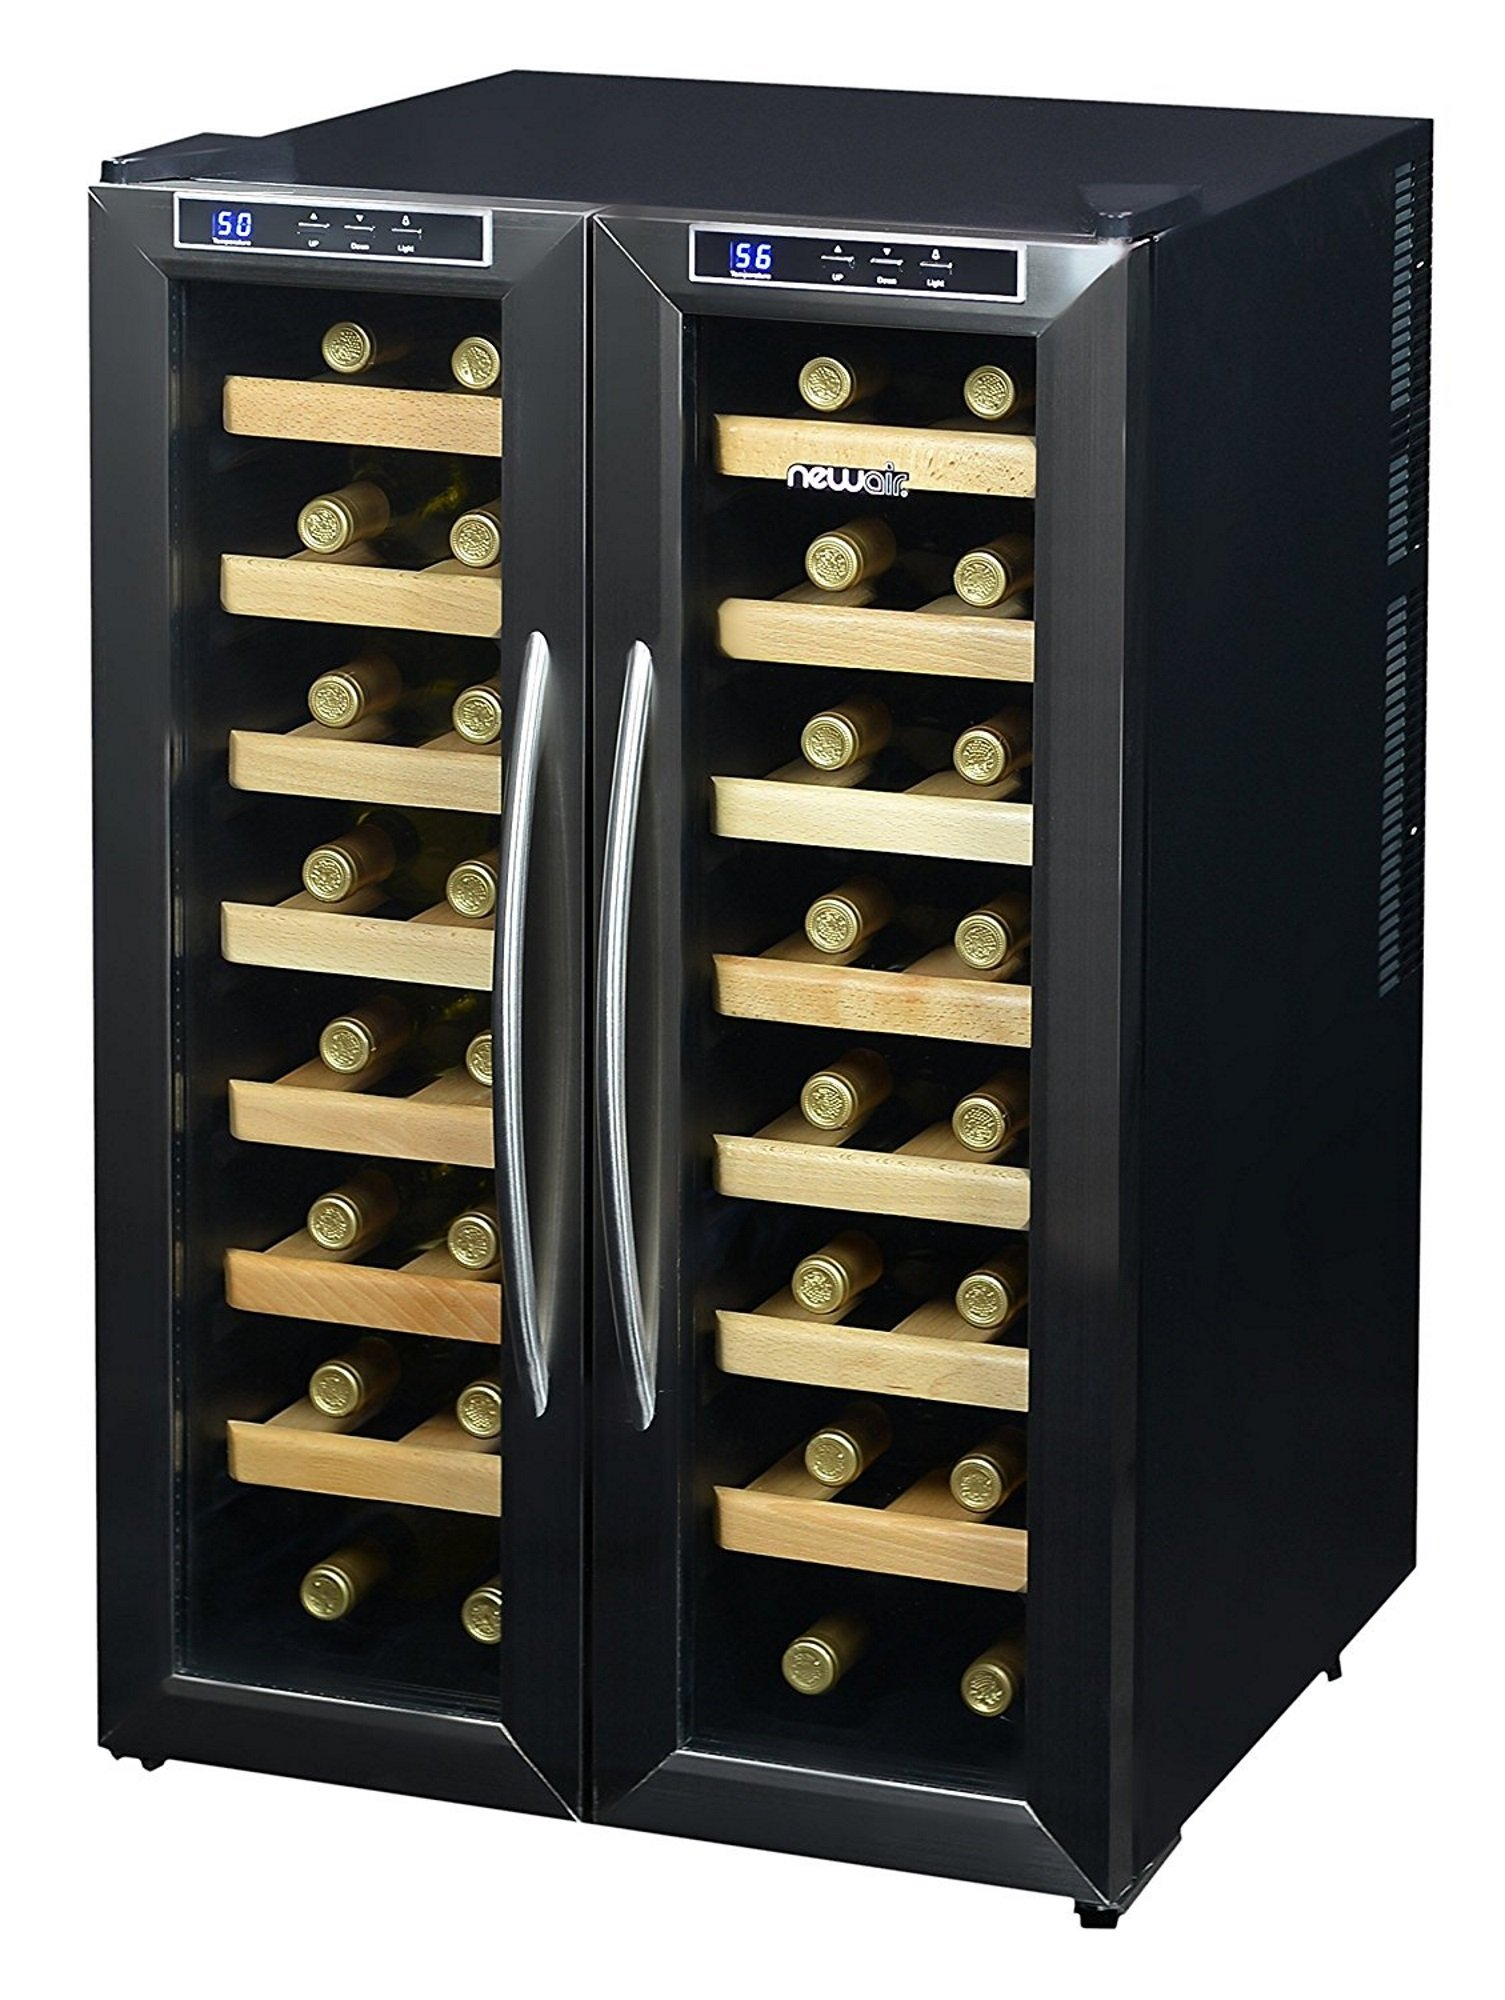 NewAir AW-321ED 32 Bottle Dual Zone Thermoelectric Wine Cooler, Stainless Steel & Black